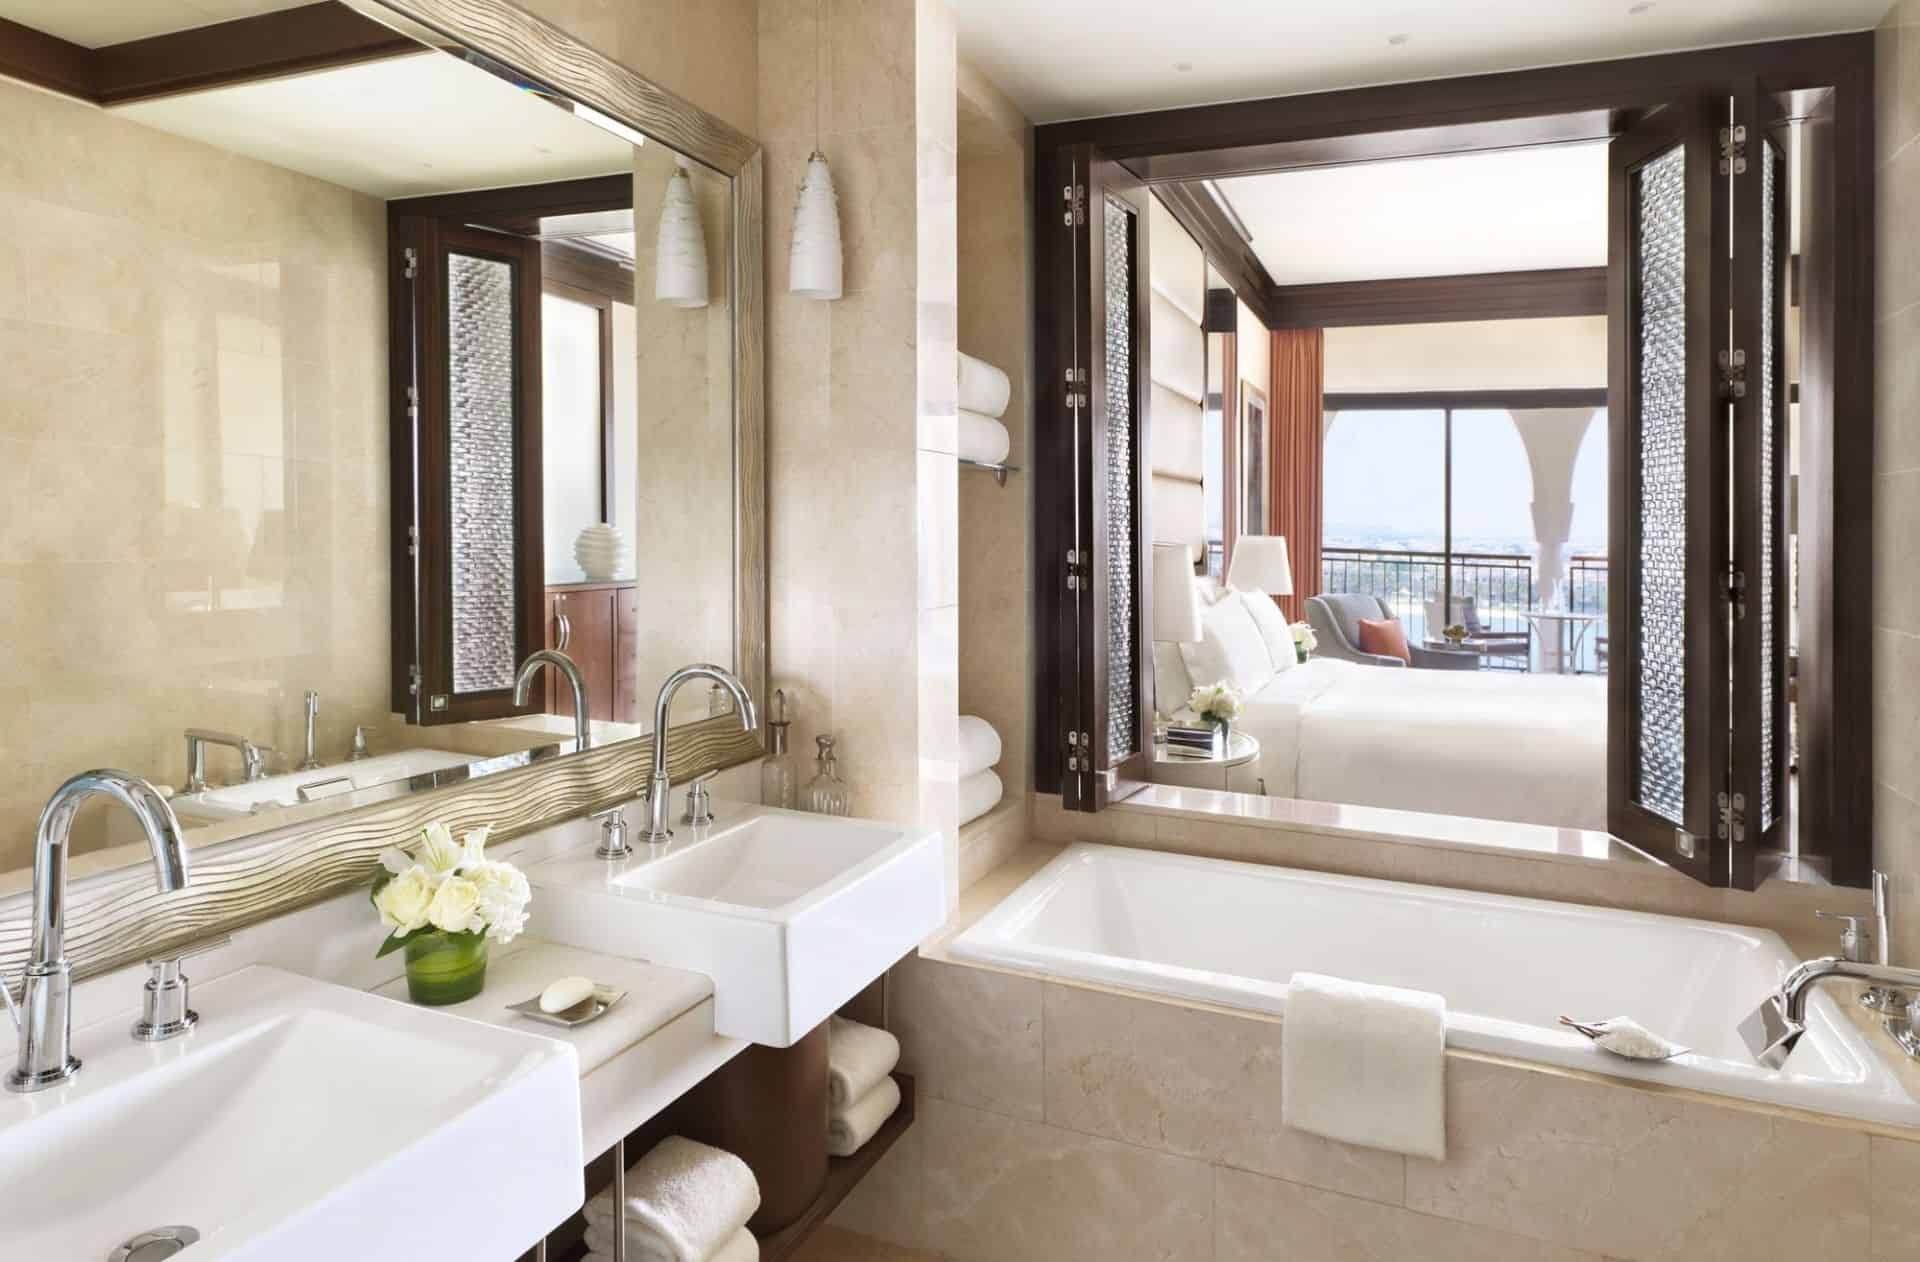 Ritz Carlton Abu Dhabi Deluxe King Bathroom